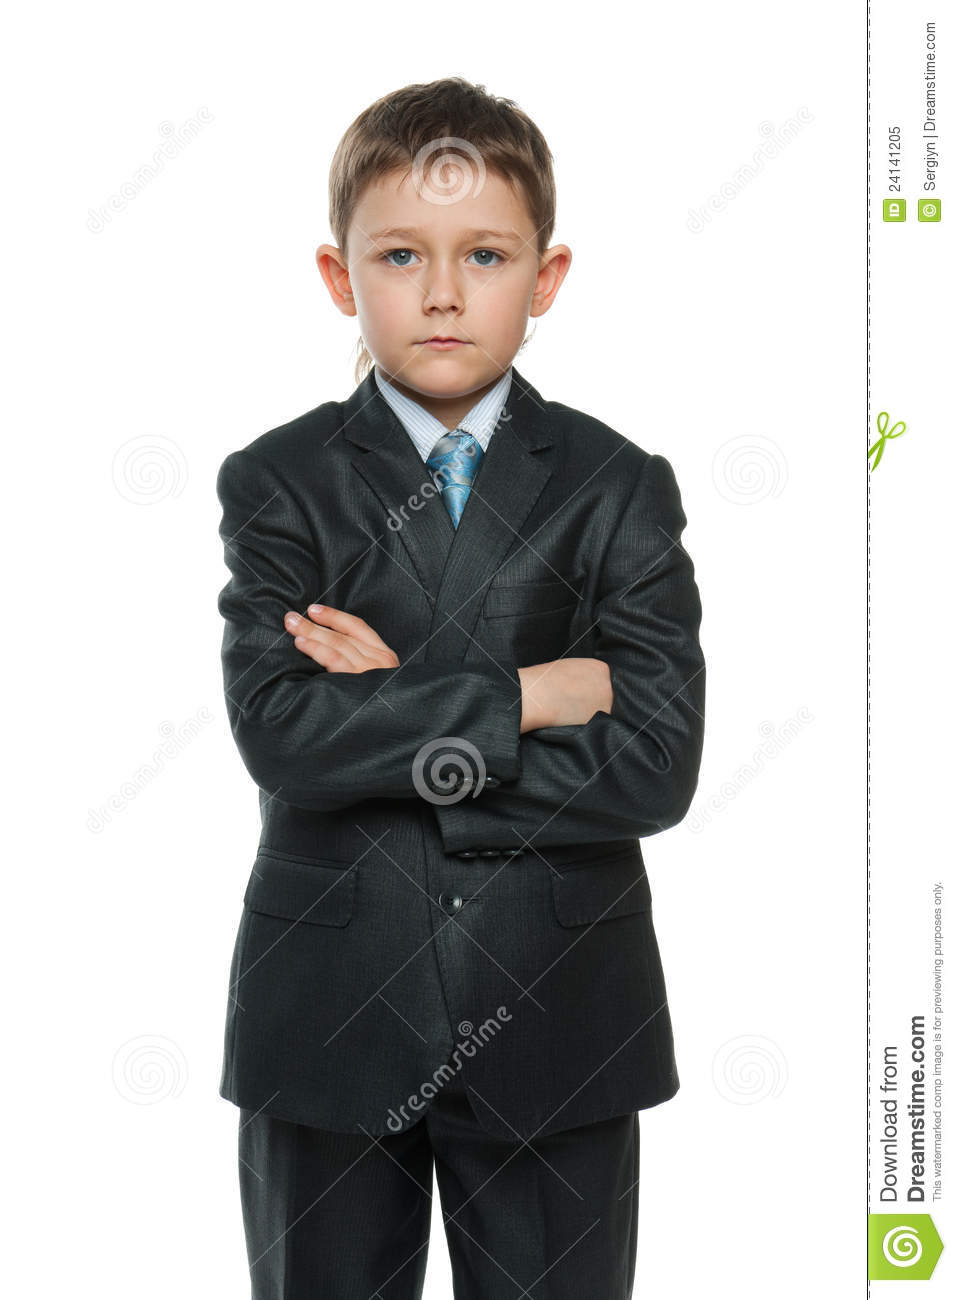 Choosing Appropriate Boys' Suits for Special Occasions When selecting a boy's suit, it's important to know generally where and when the outfit will be worn. With a few tips, you can choose a suit that's comfortable, stylish, and appropriate for any situation that calls for a young boy to be dressed up.